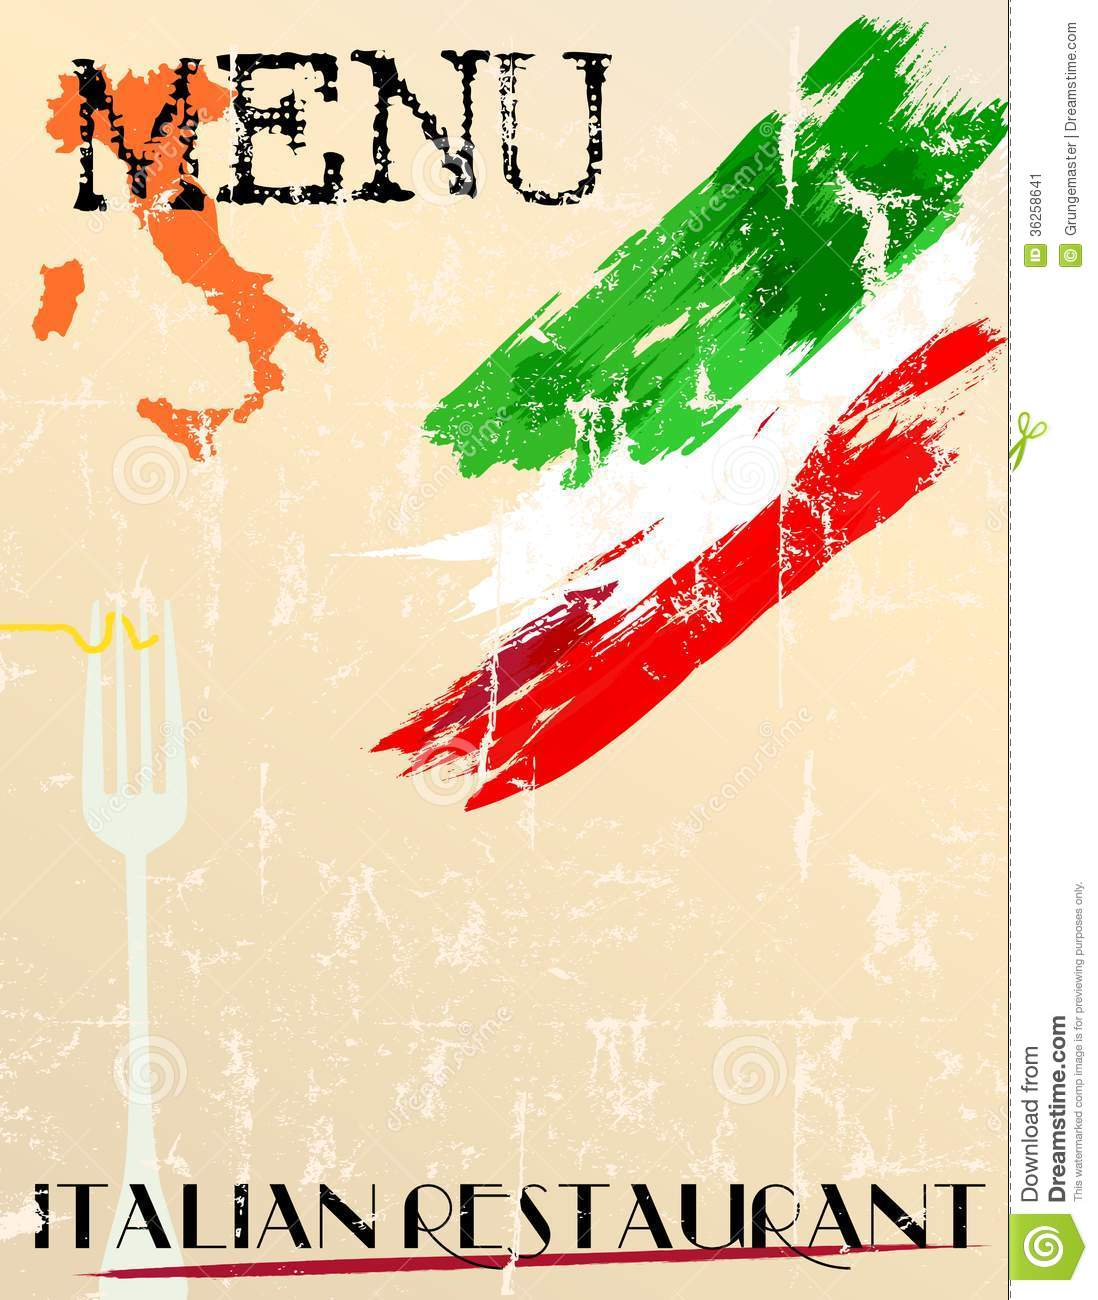 restaurant menu design stock vector illustration of food 36258641